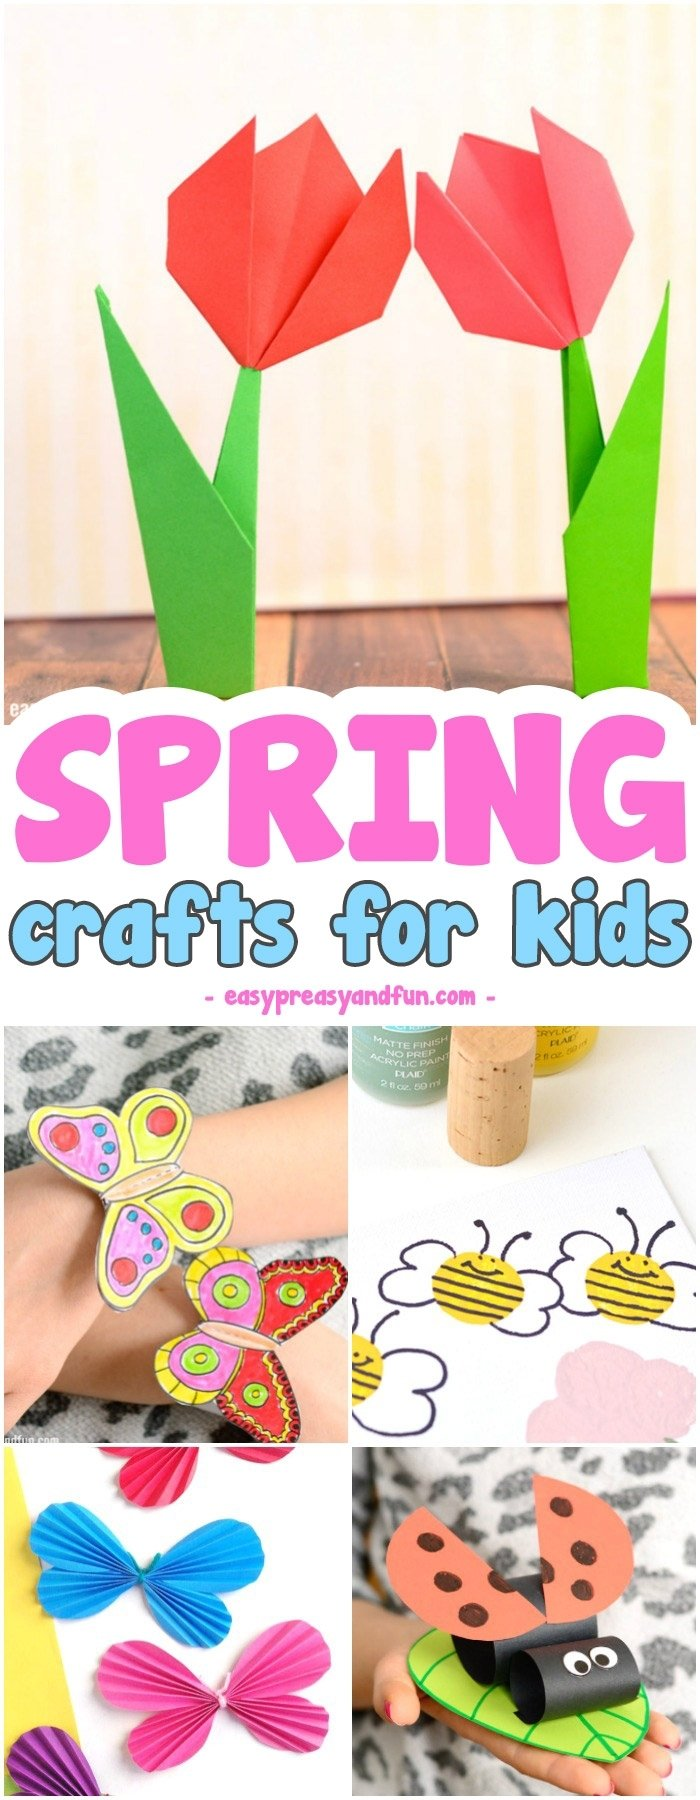 10 Fabulous Spring Craft Ideas For Kids spring crafts for kids art and craft project ideas for all ages 1 2021